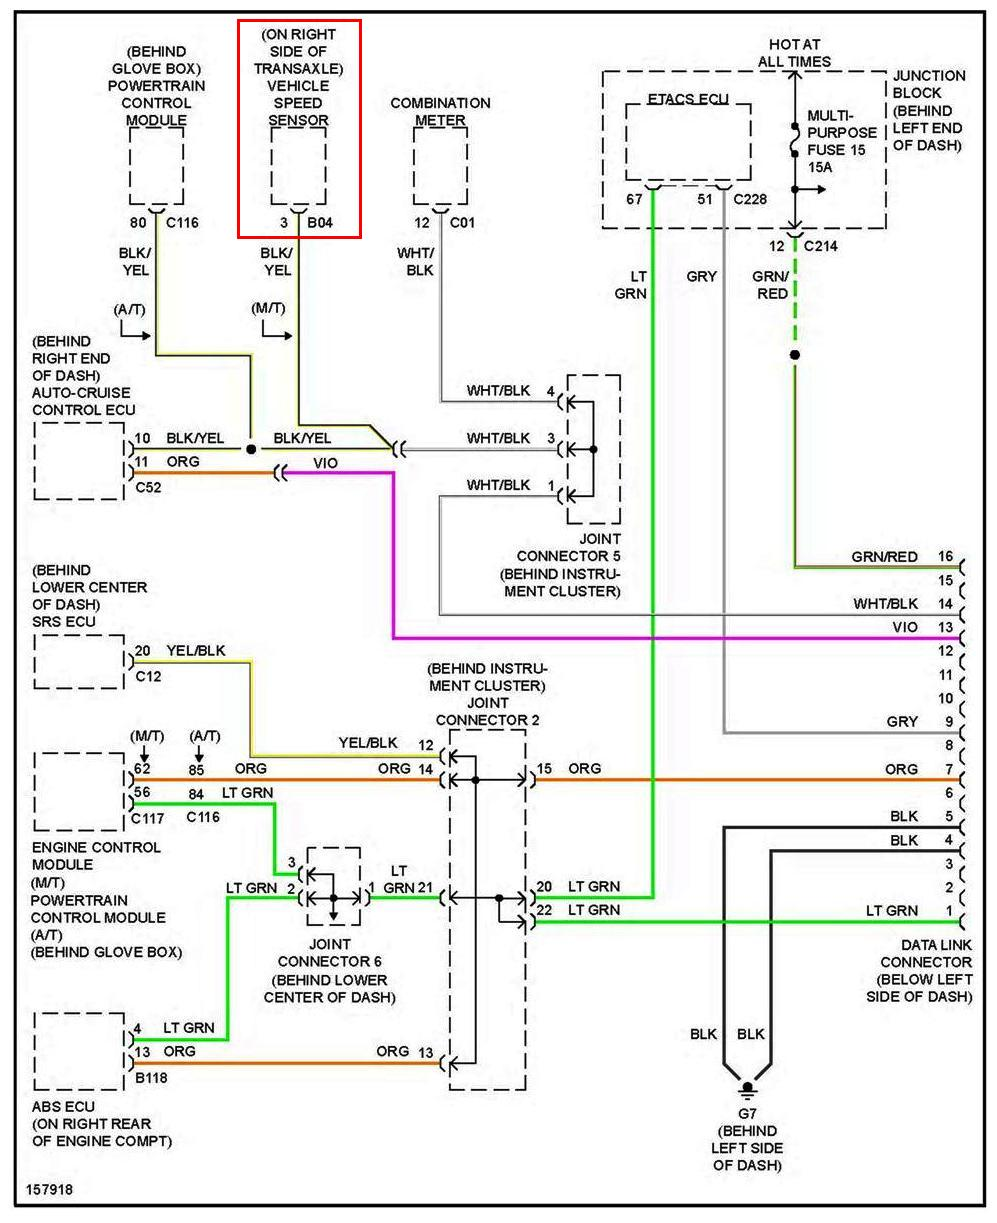 2004 Mitsubishi Endeavor Wiring Diagram Window Best Electrical 2005 Where Do I Find The Vehicle Speed Sensor A On 2001 Awd 08 Subaru Forester Power Relay